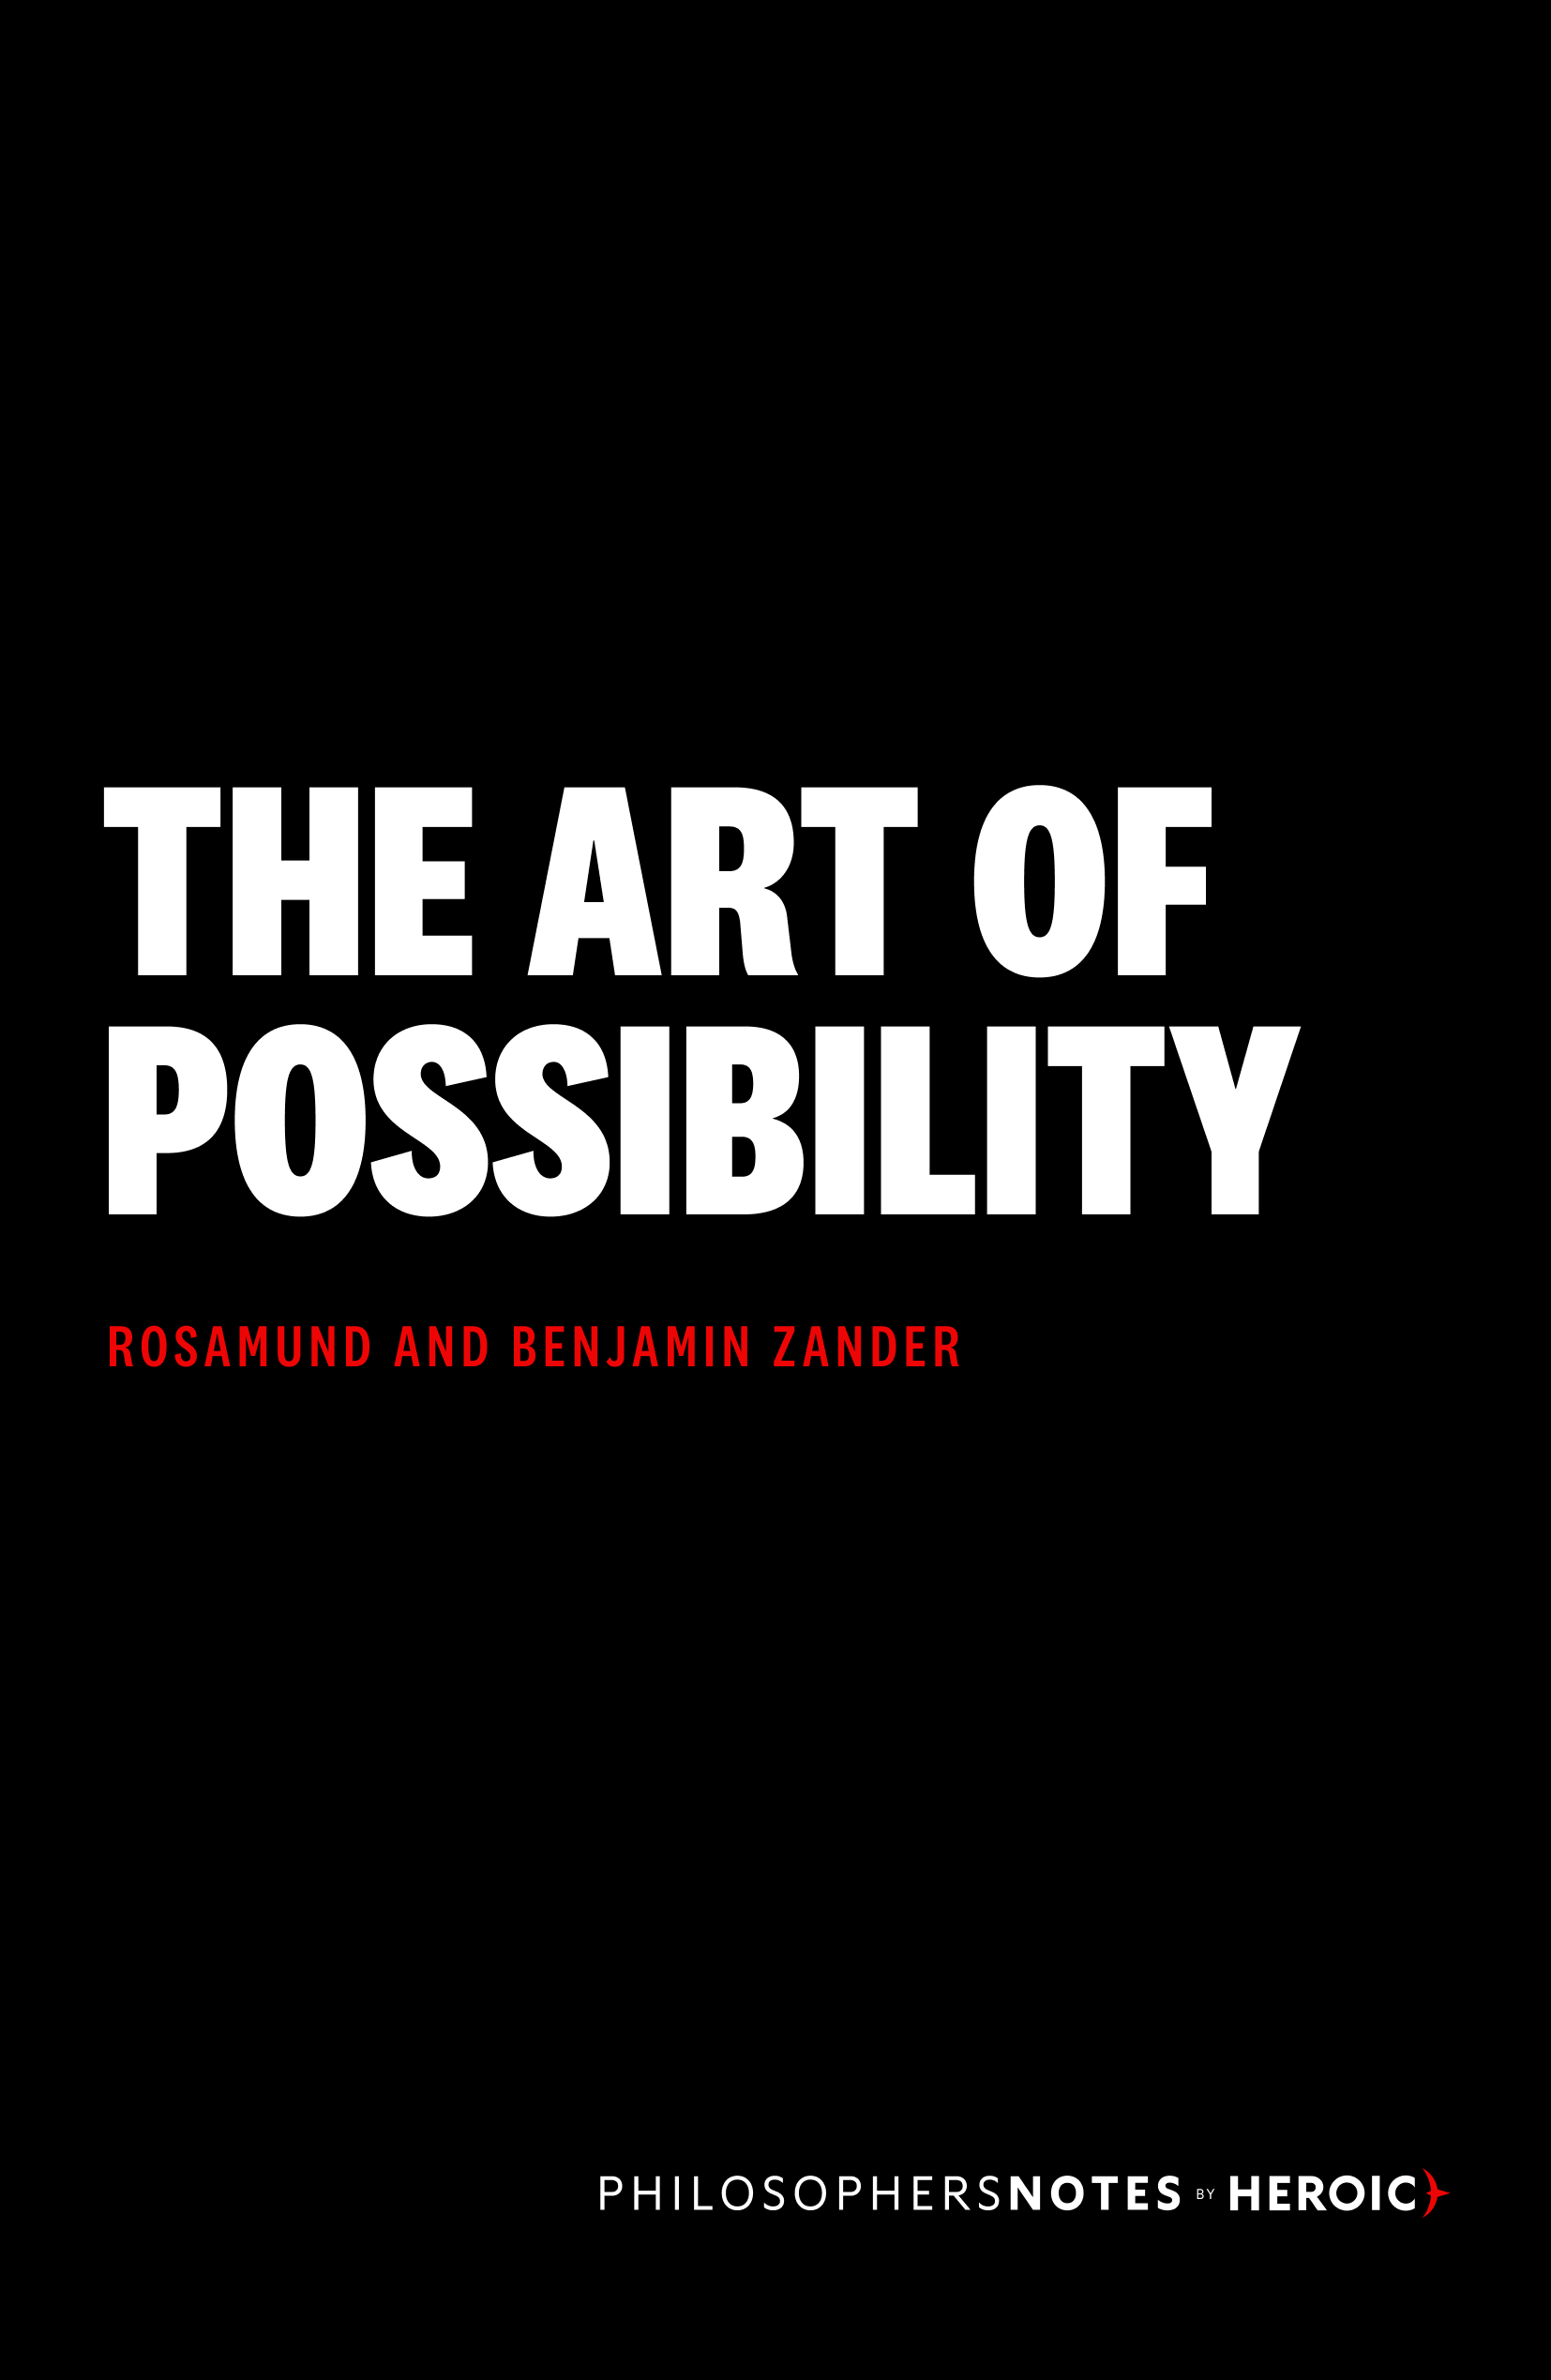 The Art of Possibility